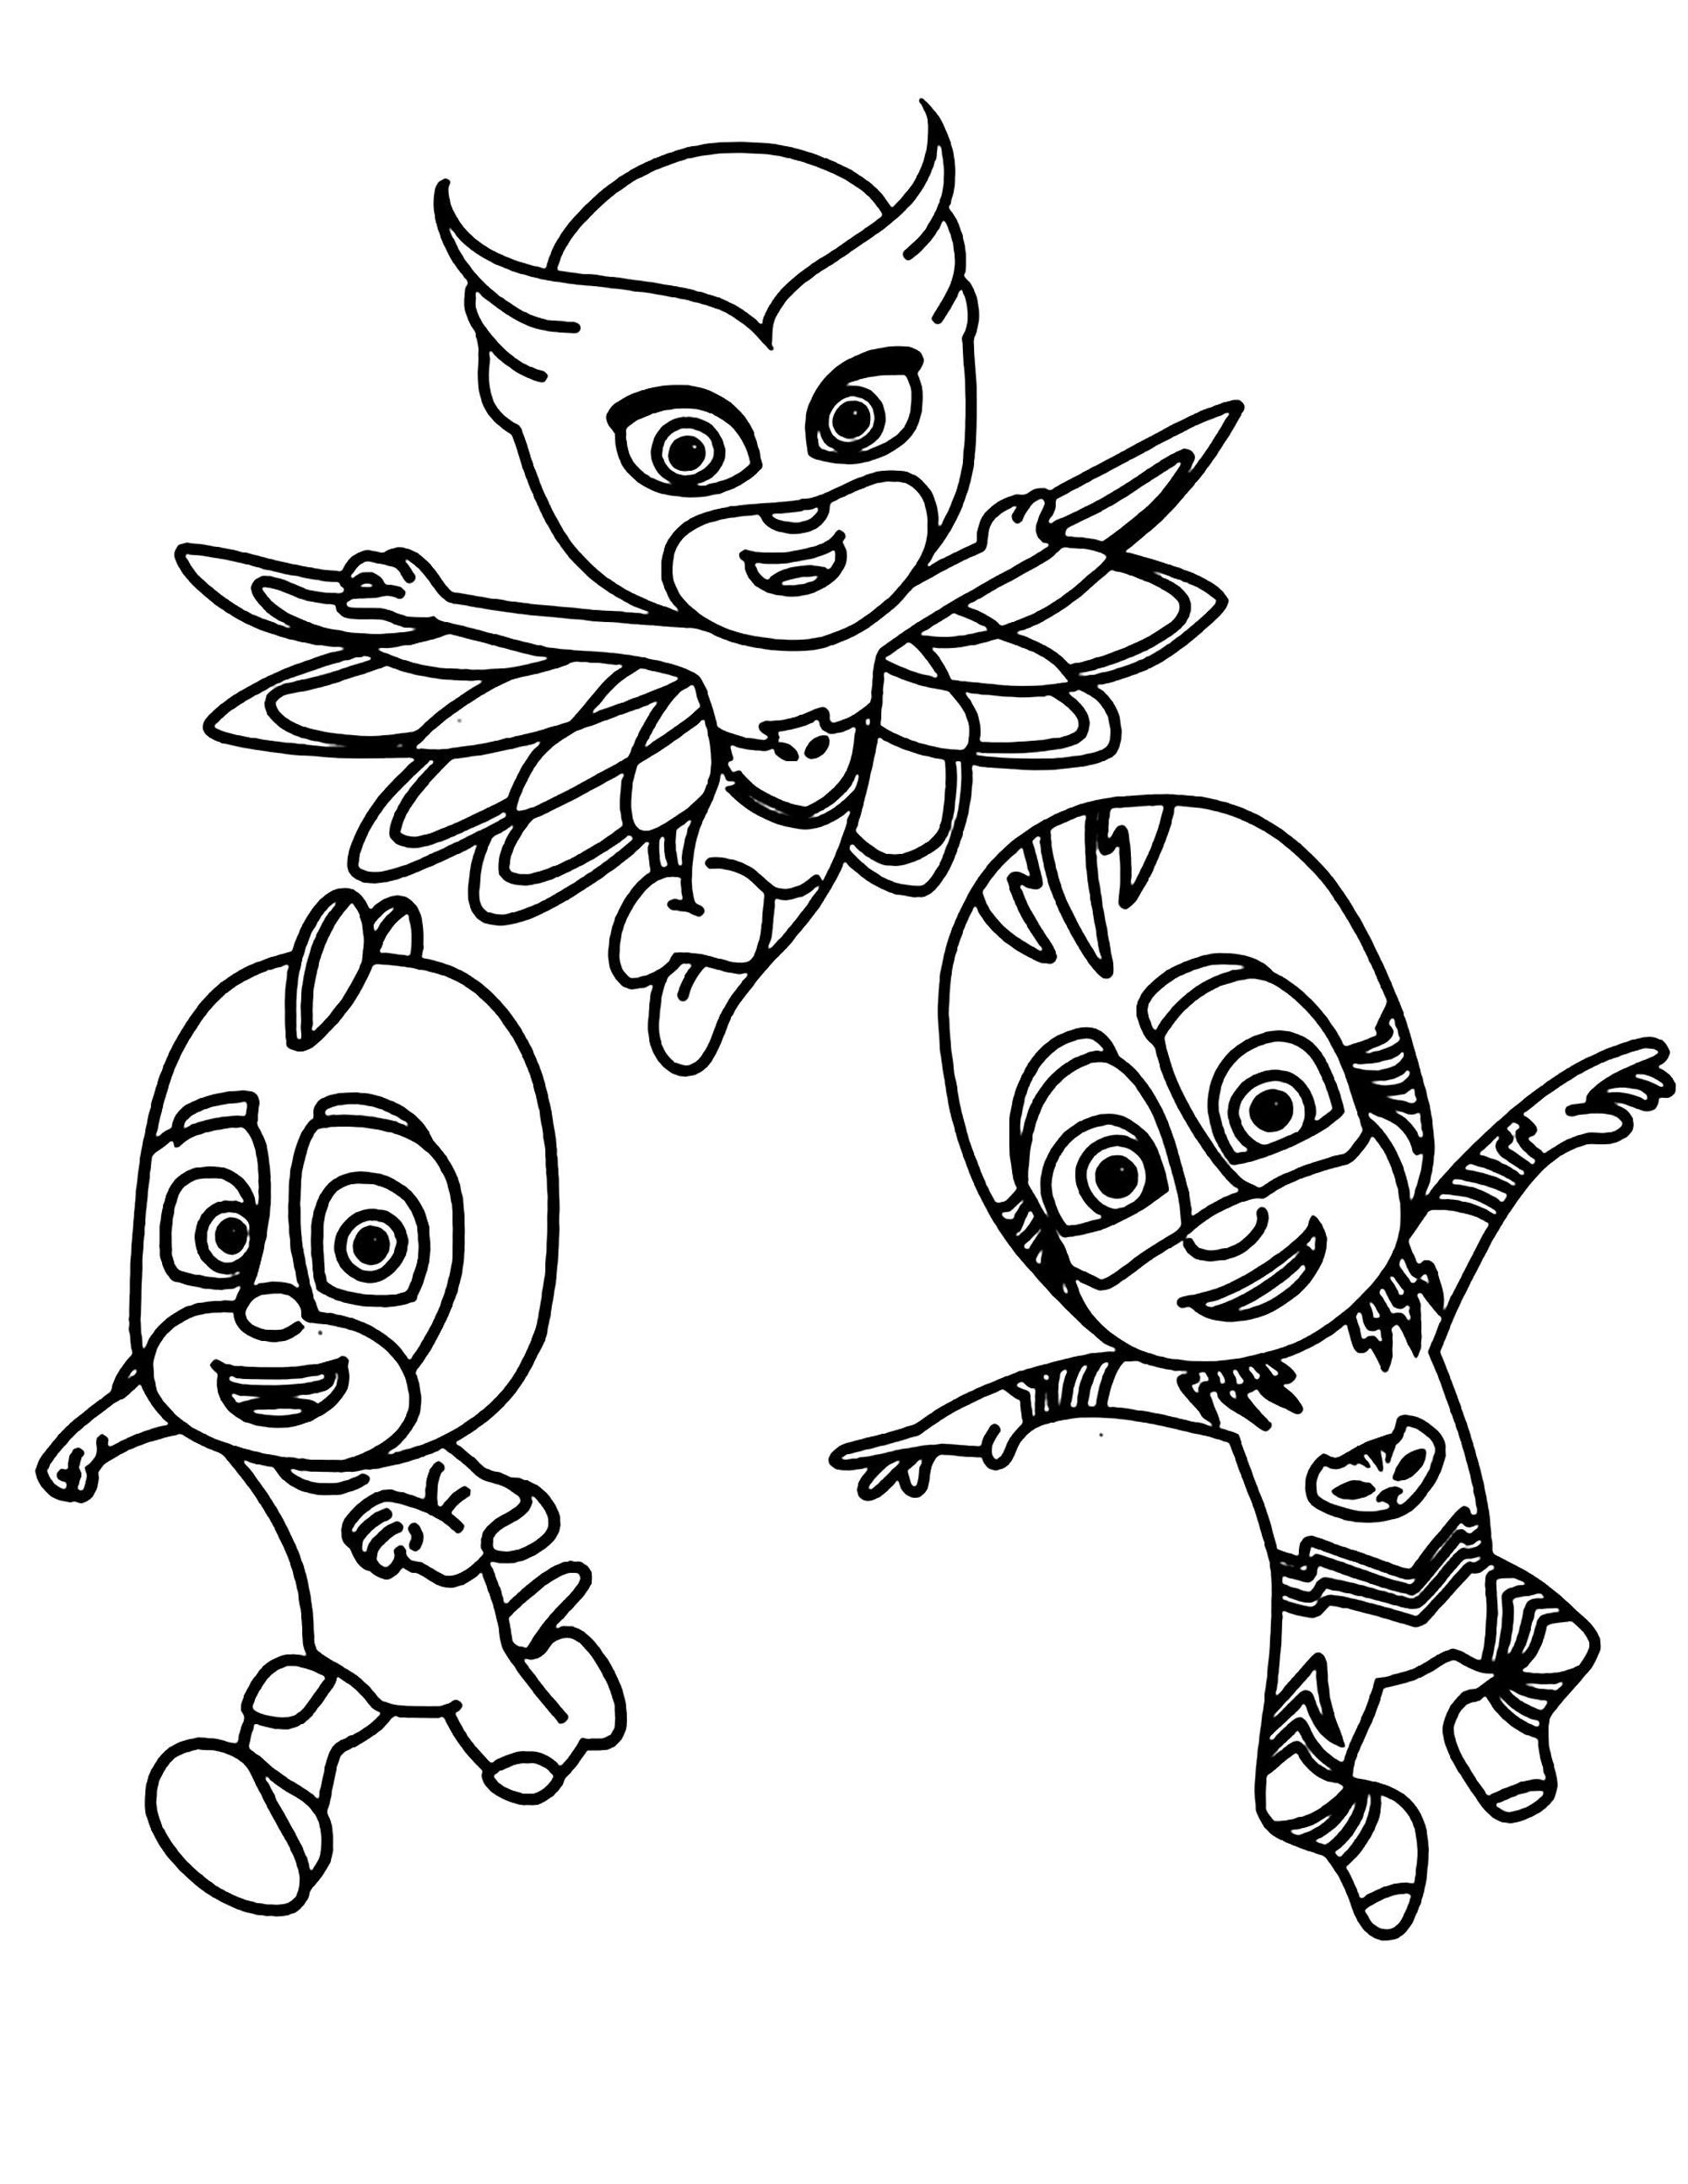 Pj Masks Pictures To Print And Color